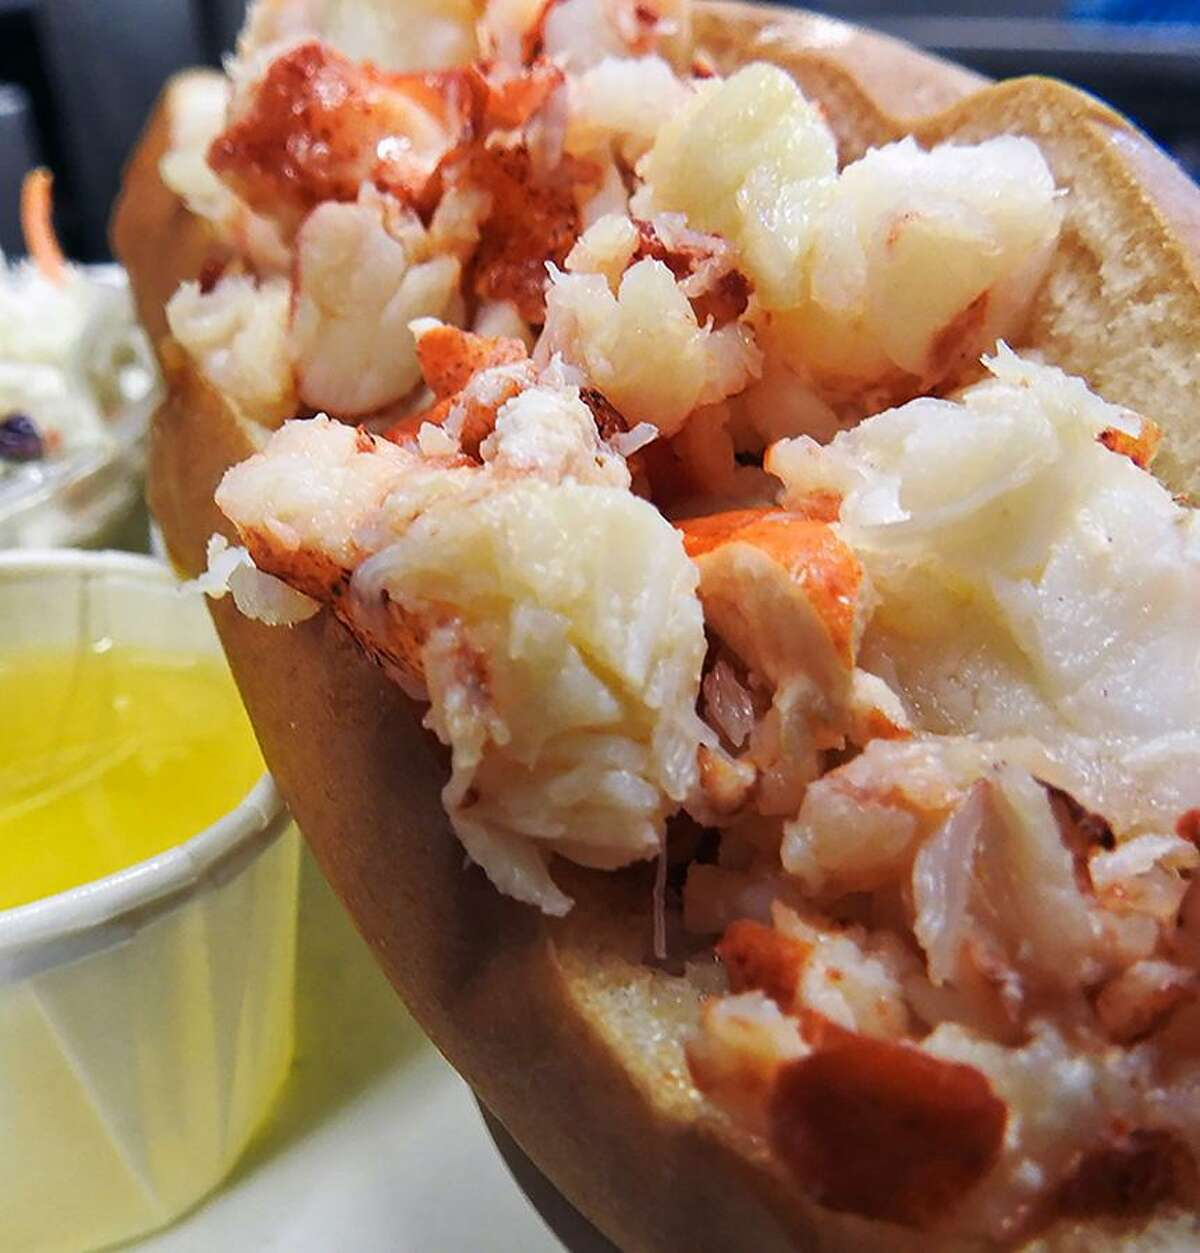 A lobster roll at Lenny & Joe's Fish Tale, with locations in Madison and Westbrook.